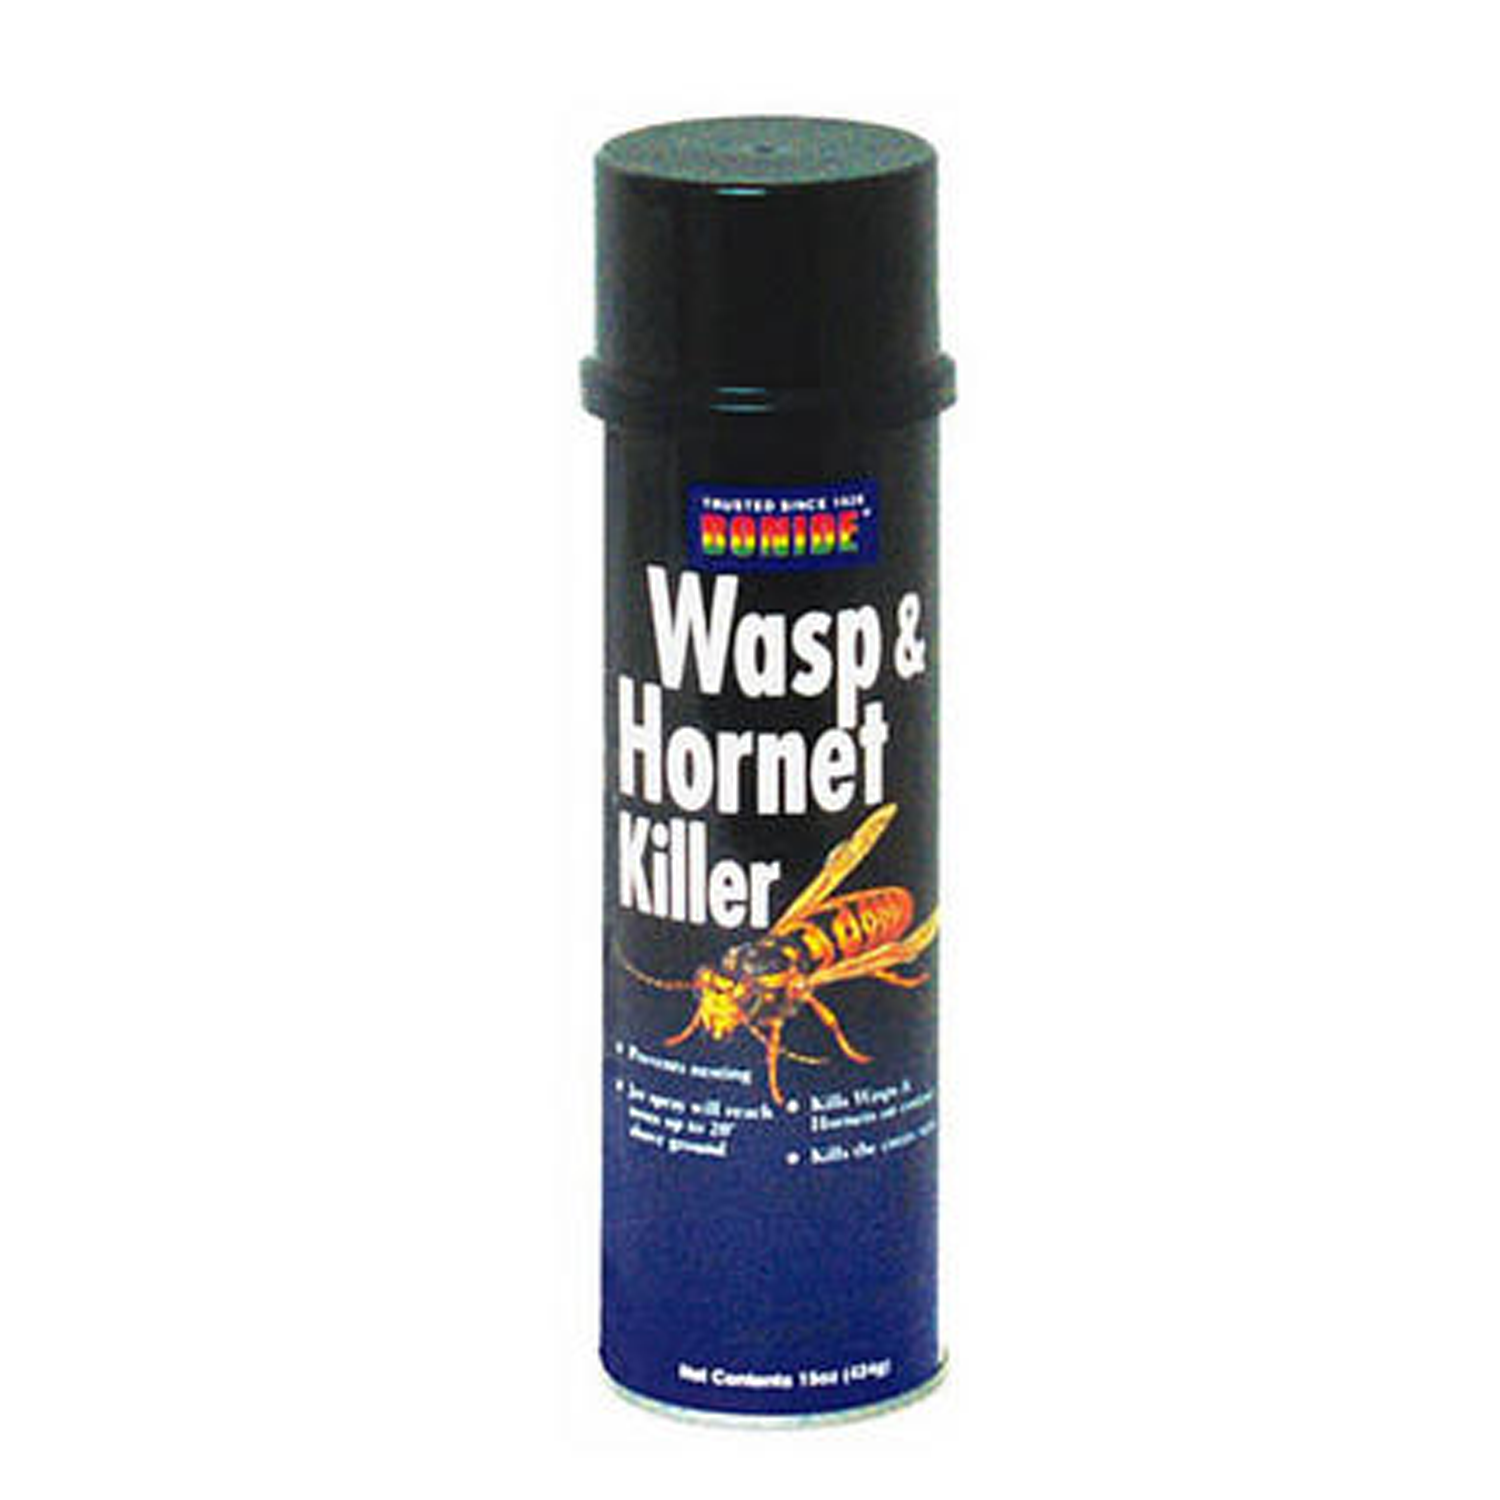 Wasp & Hornet Killer Spray **Discontinued